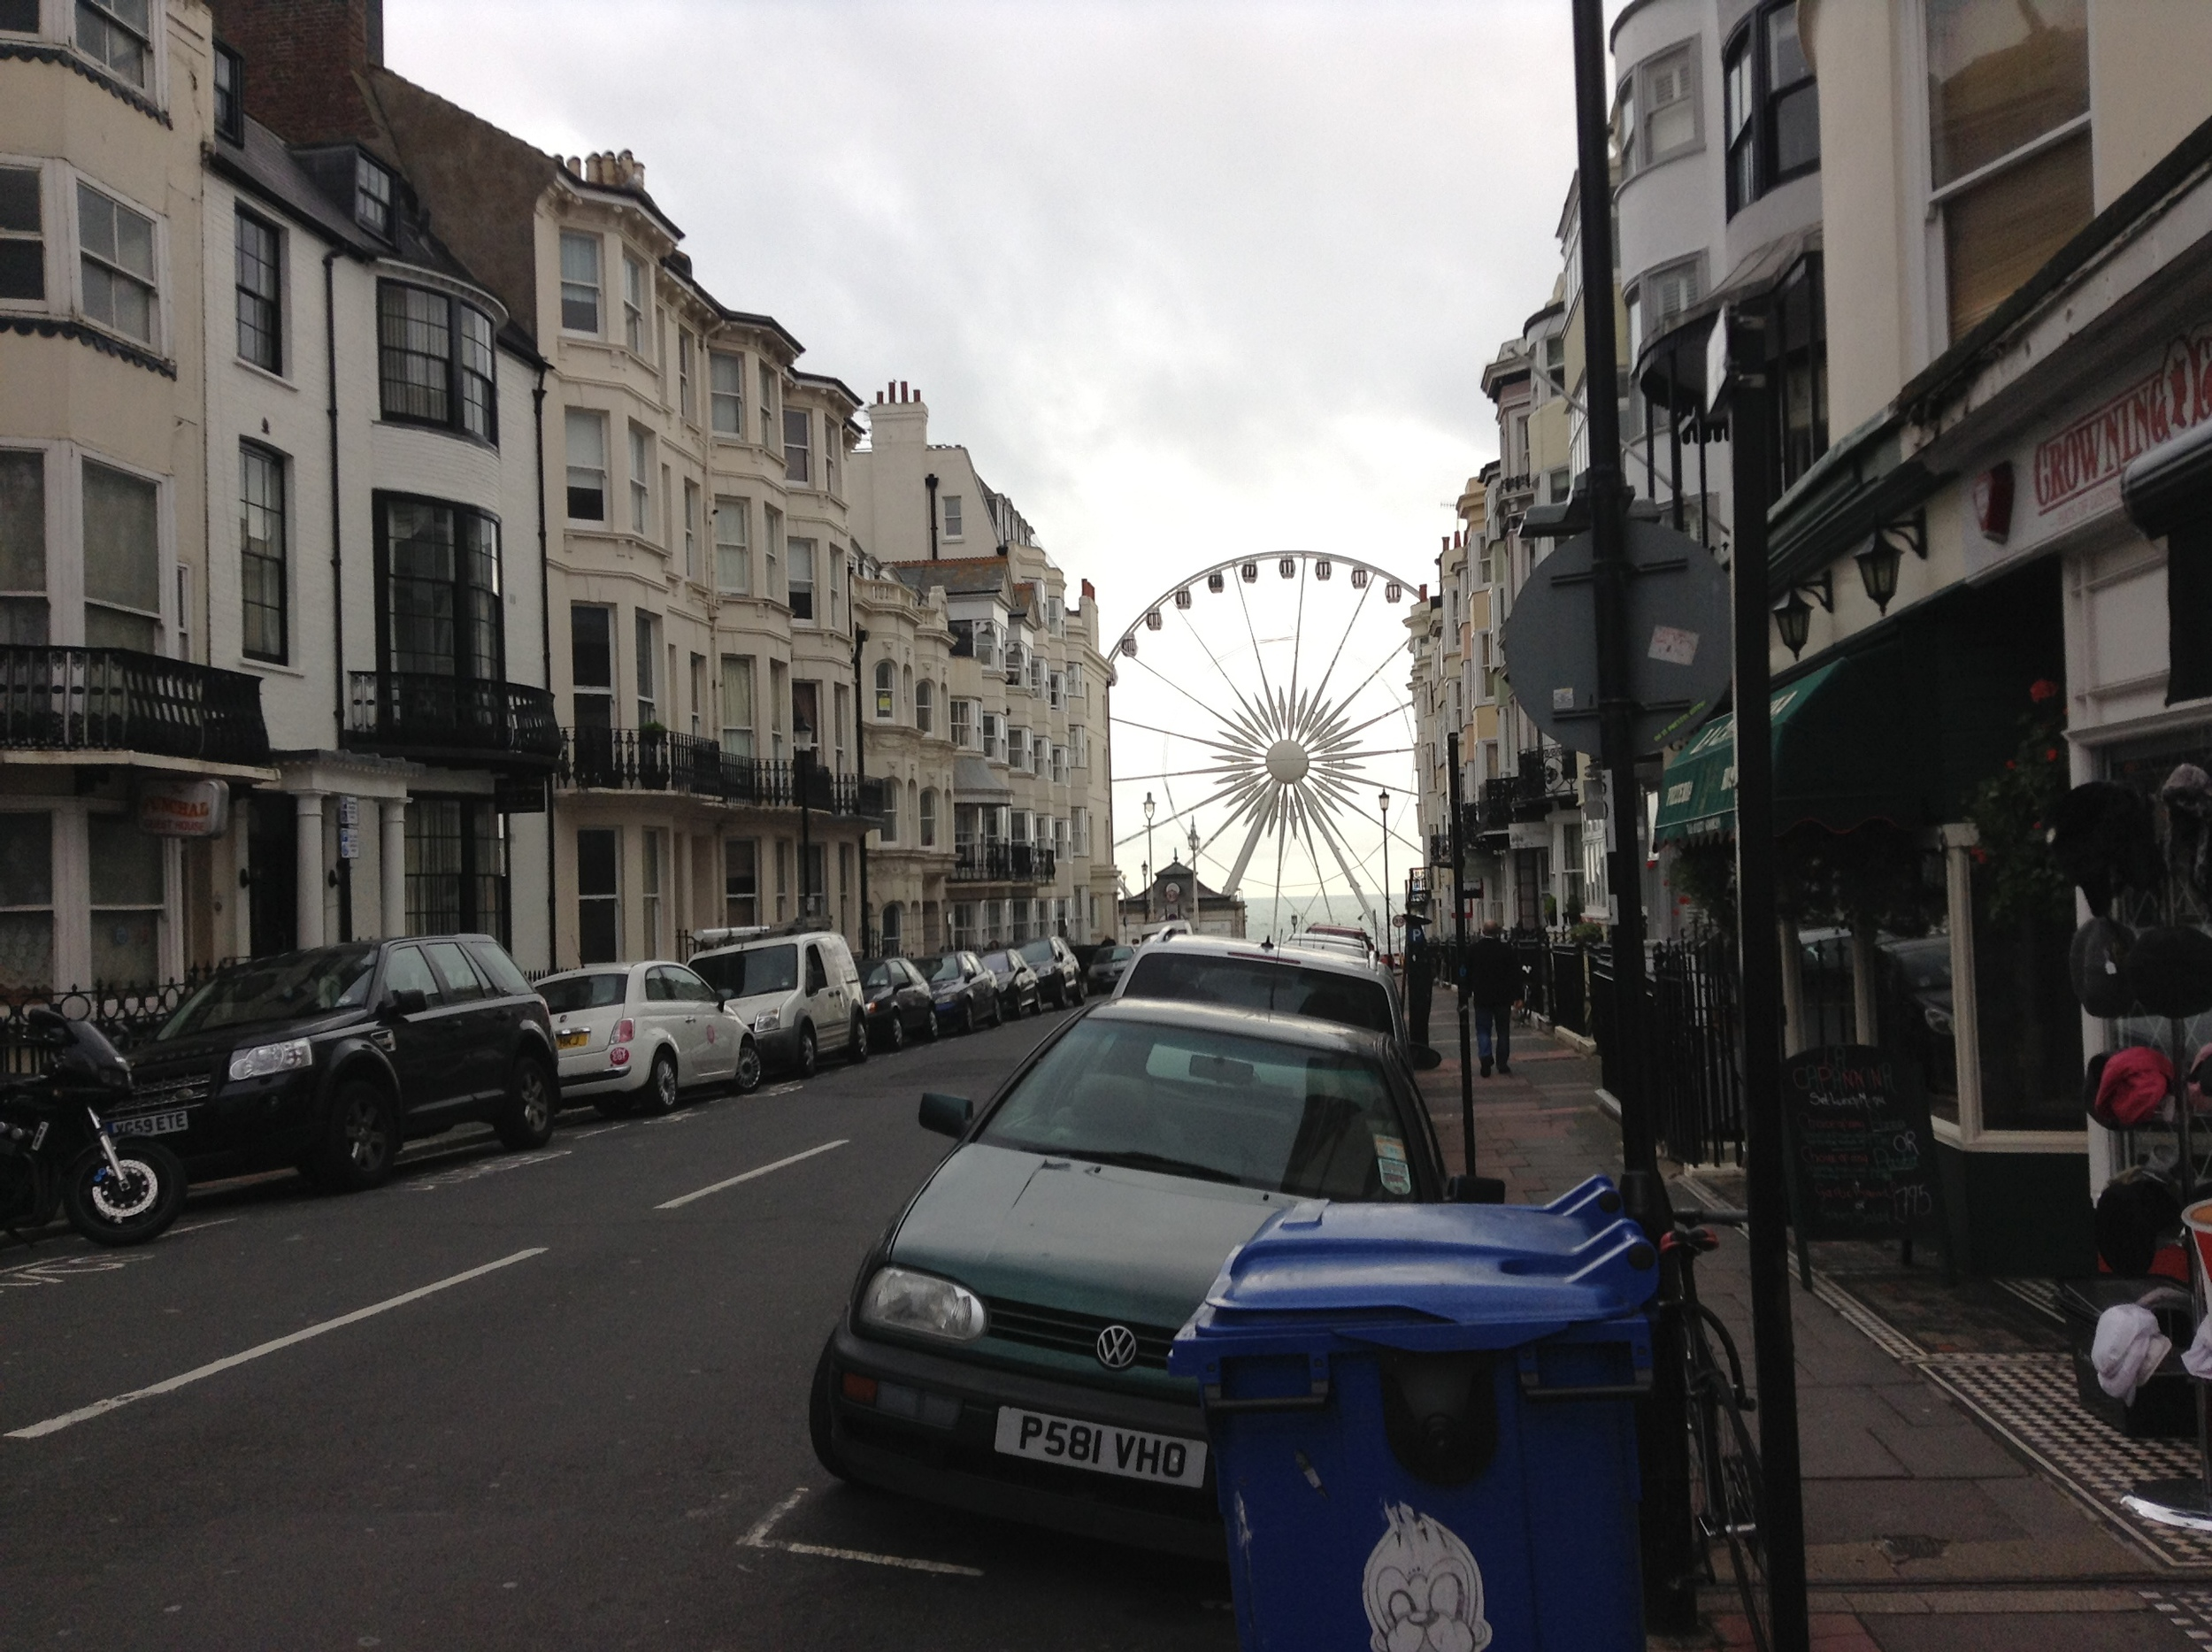 Near Legends Hotel, with Brighton Wheel in the backgrond